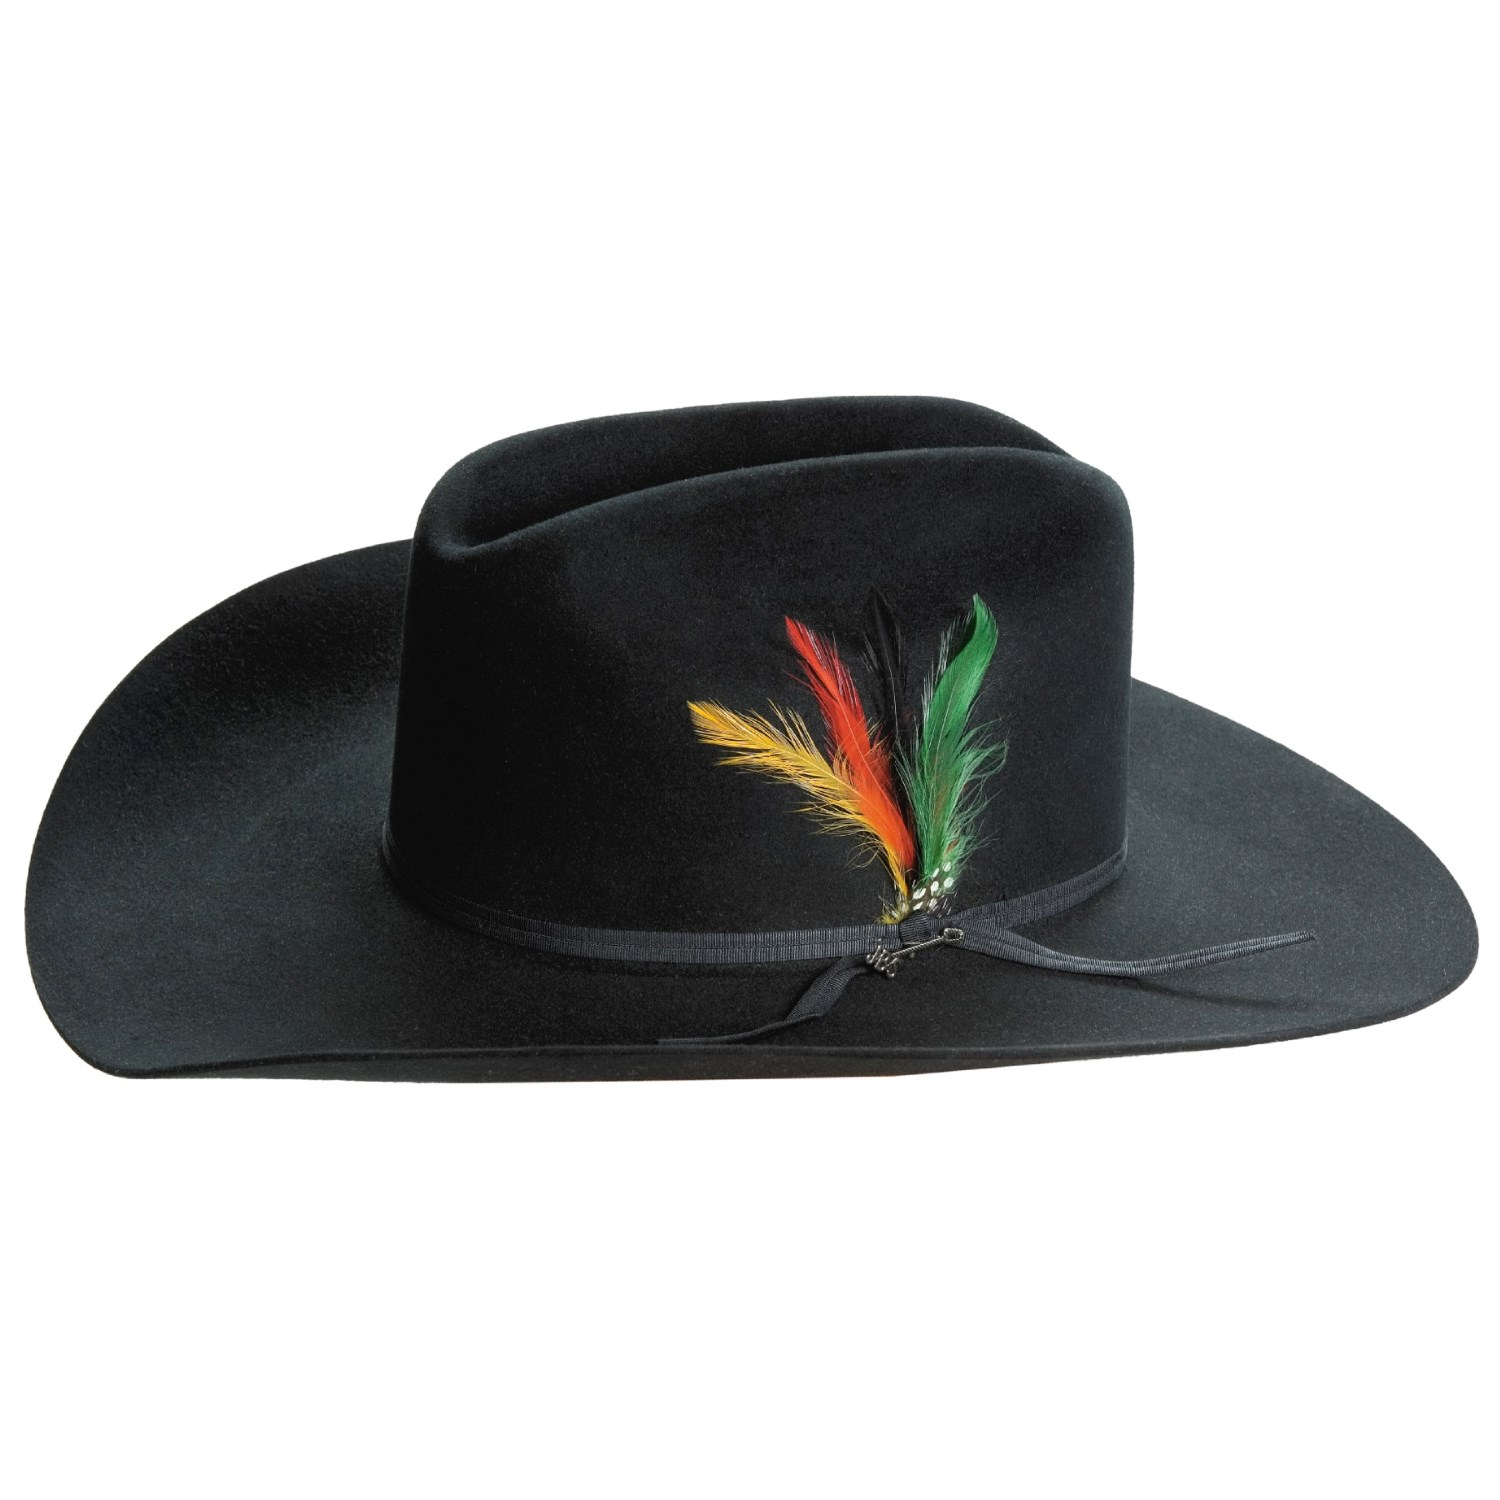 Stetson Felt Hats for Men